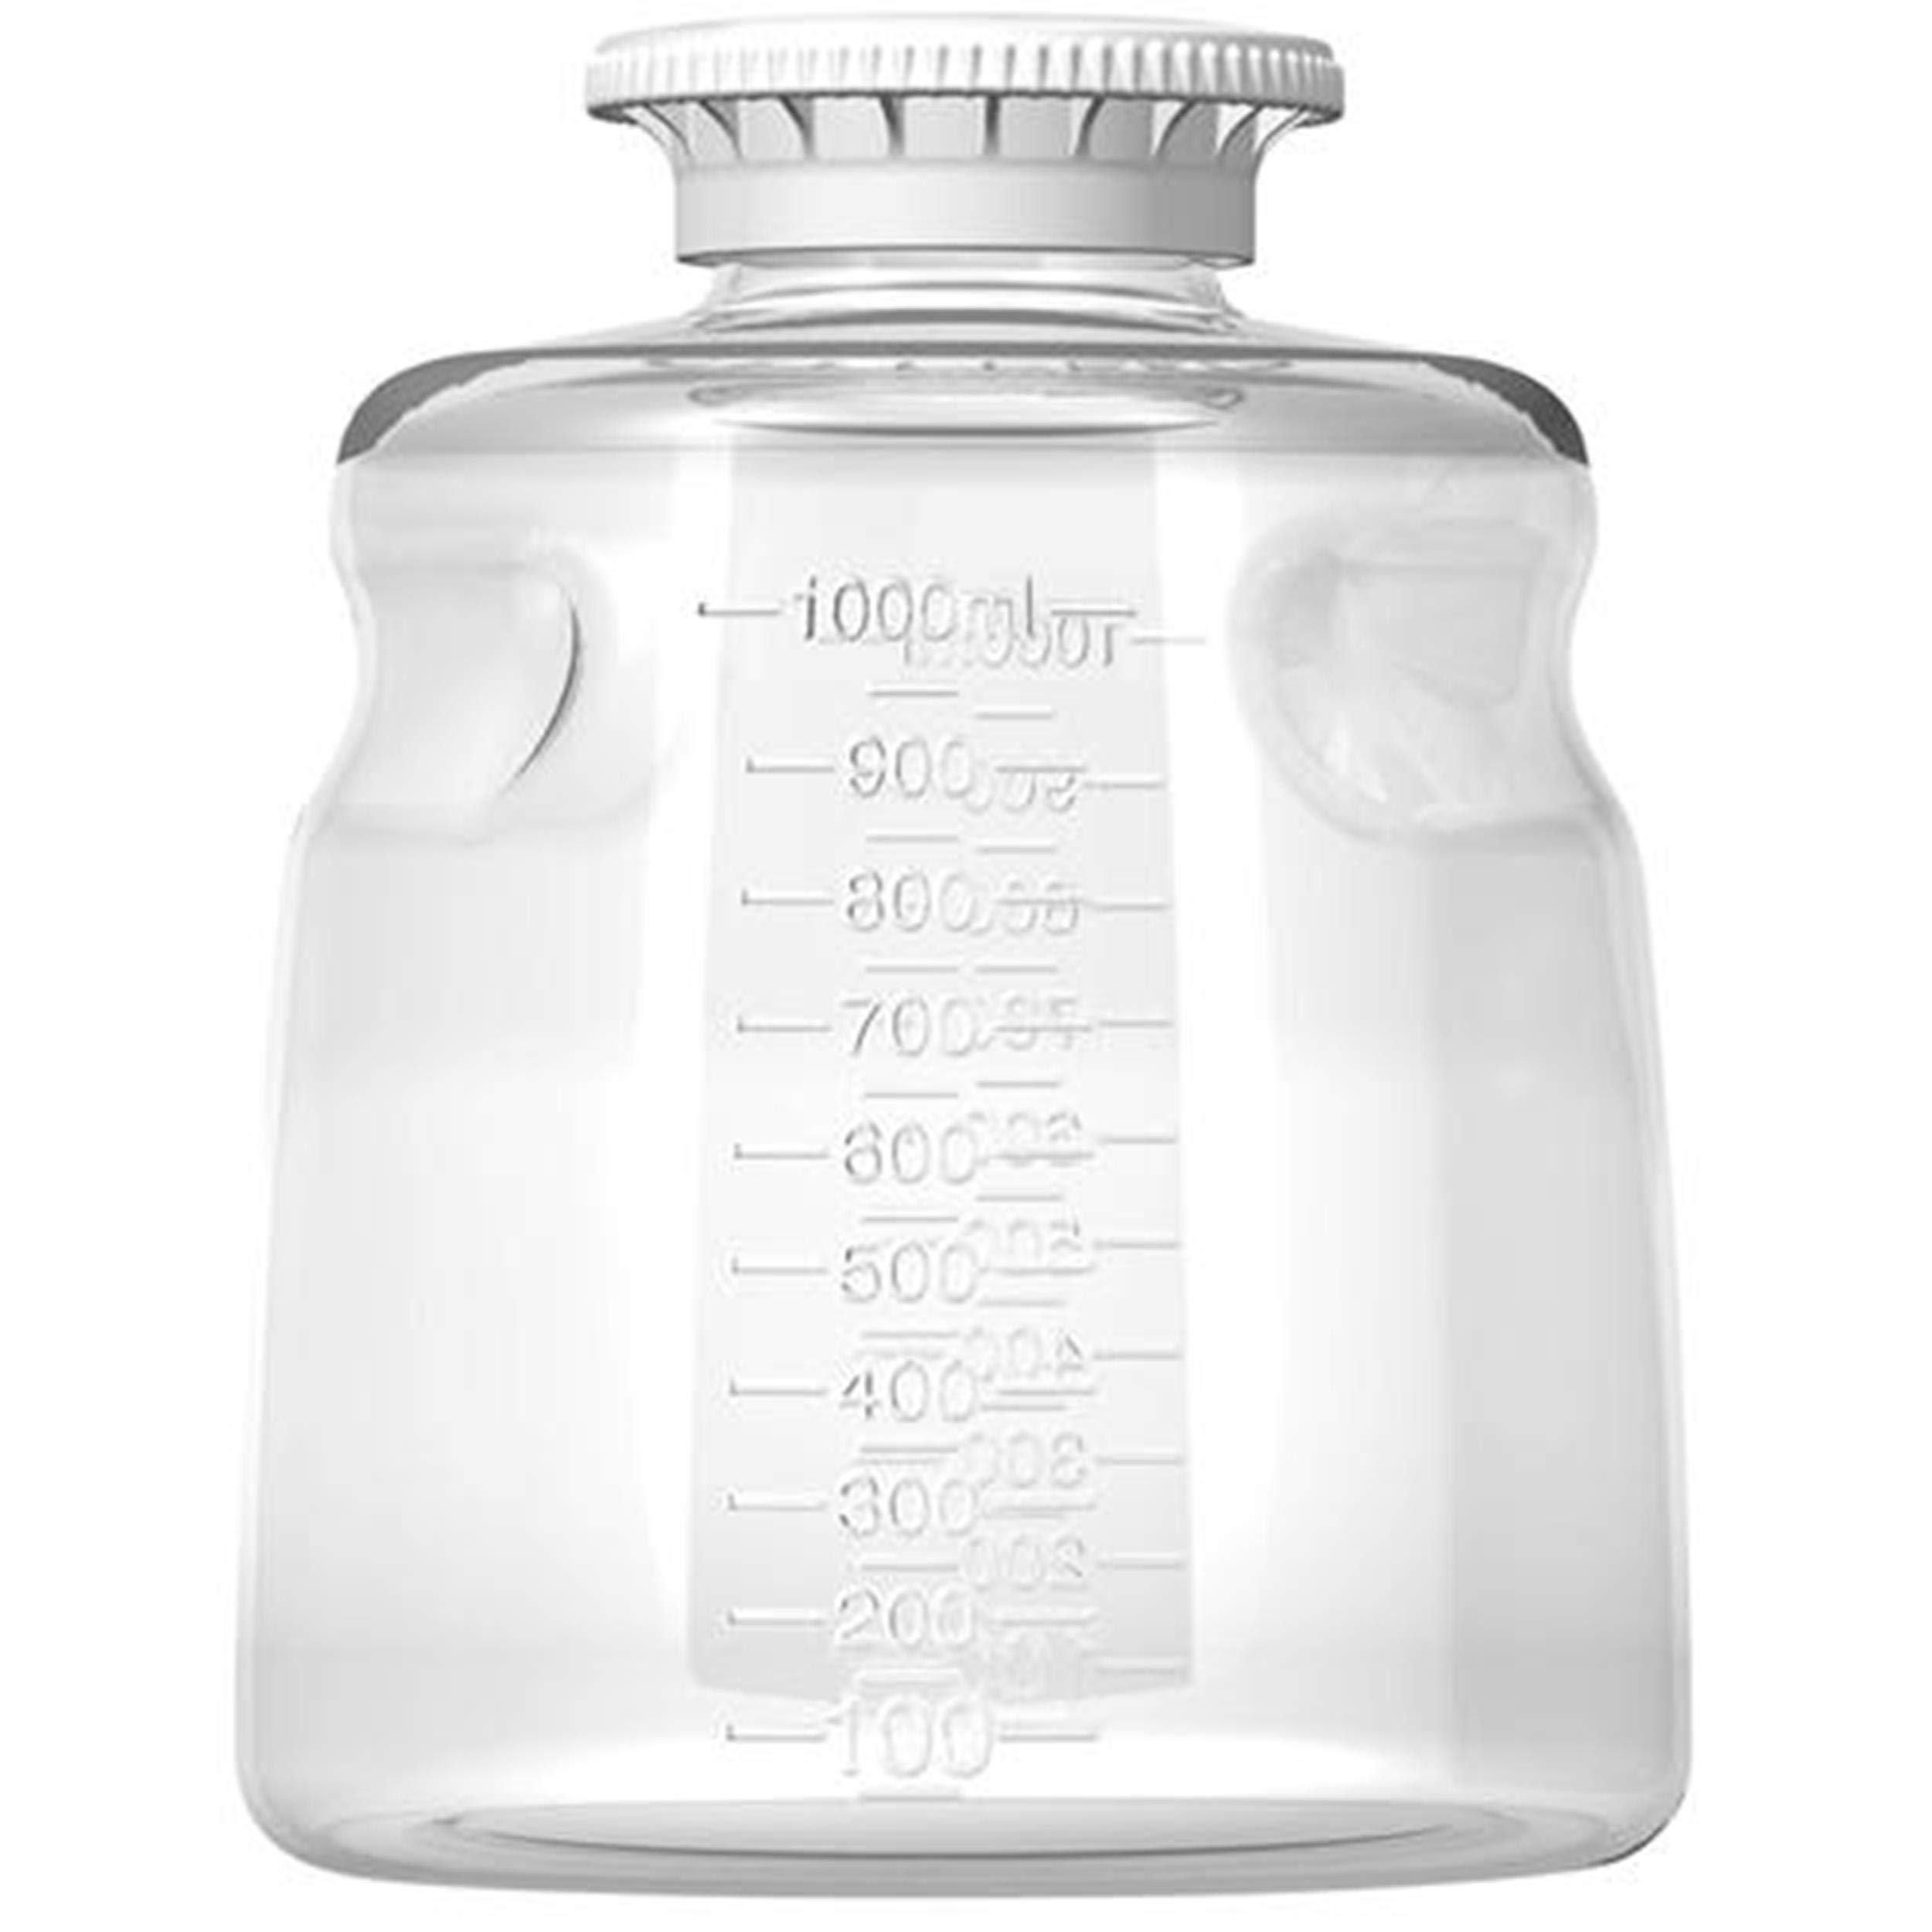 Autofil Polystyrene Sterile Disposable Media Bottle with Polypropylene Cap, 1000ml Volume (Pack of 24) by Foxx Life Sciences